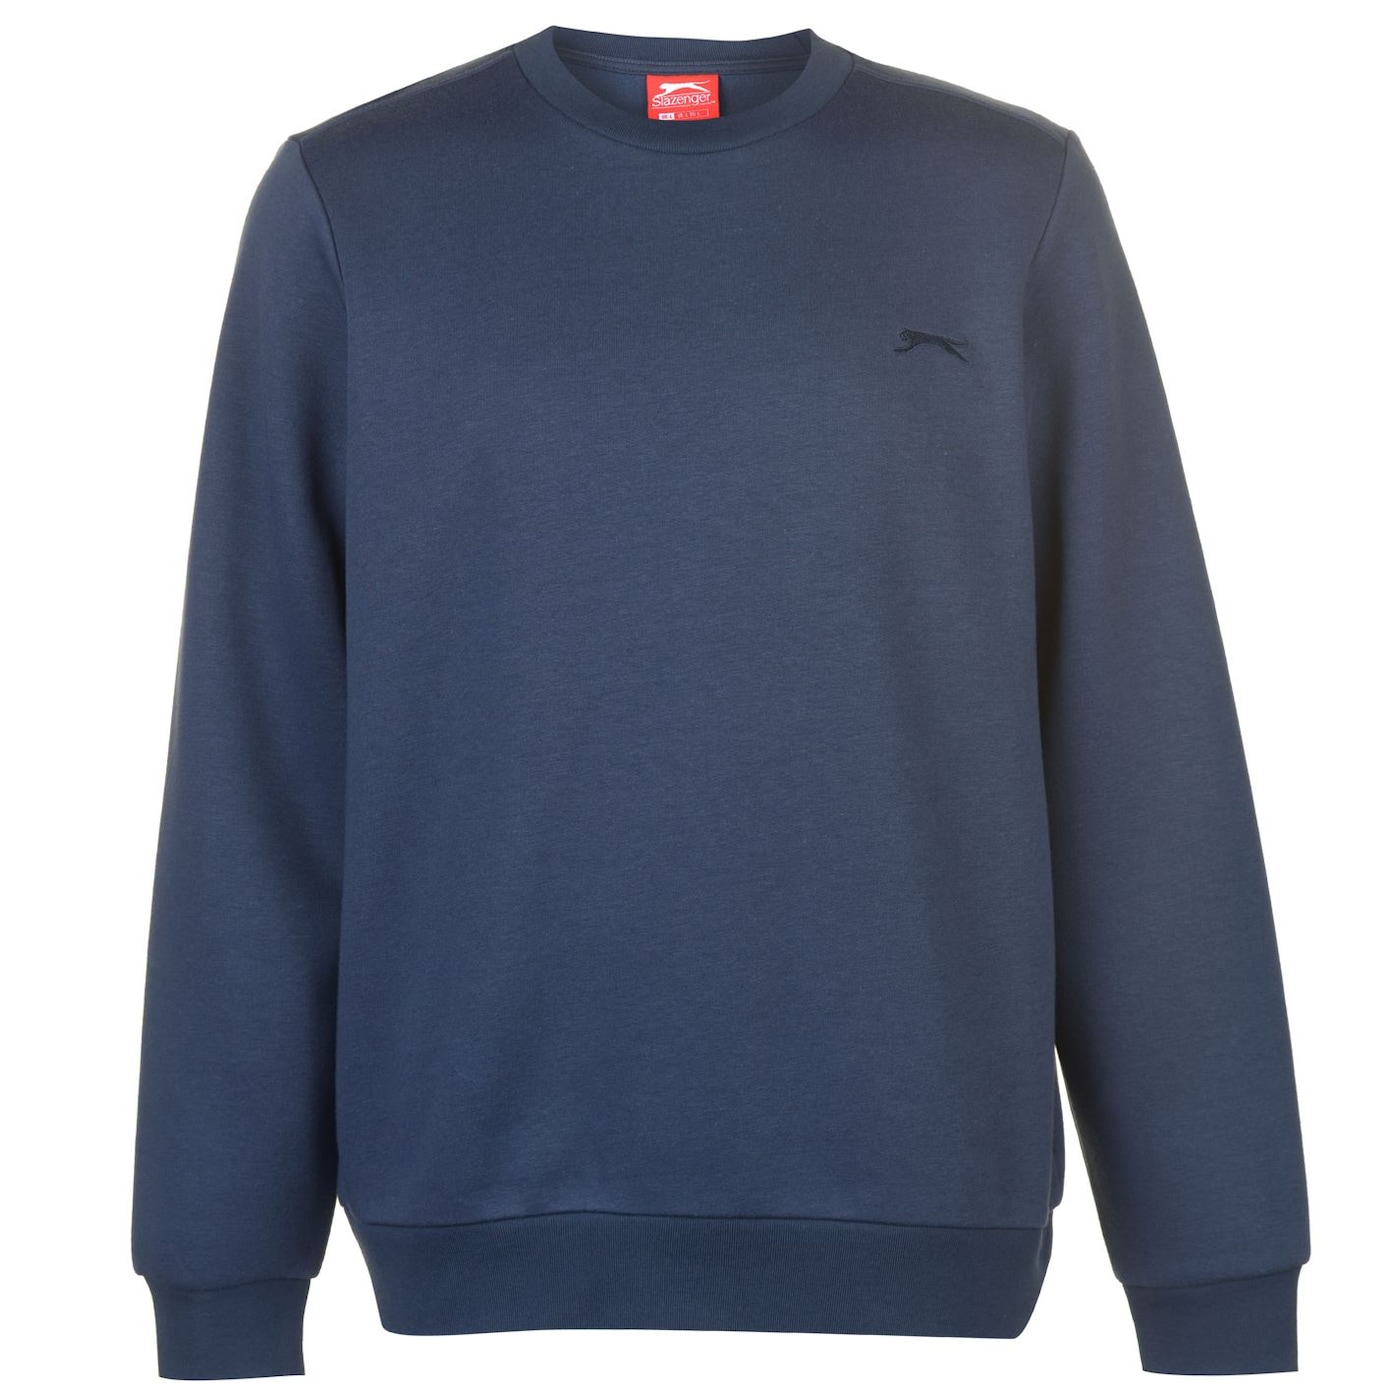 Men's sweater Slazenger Crew